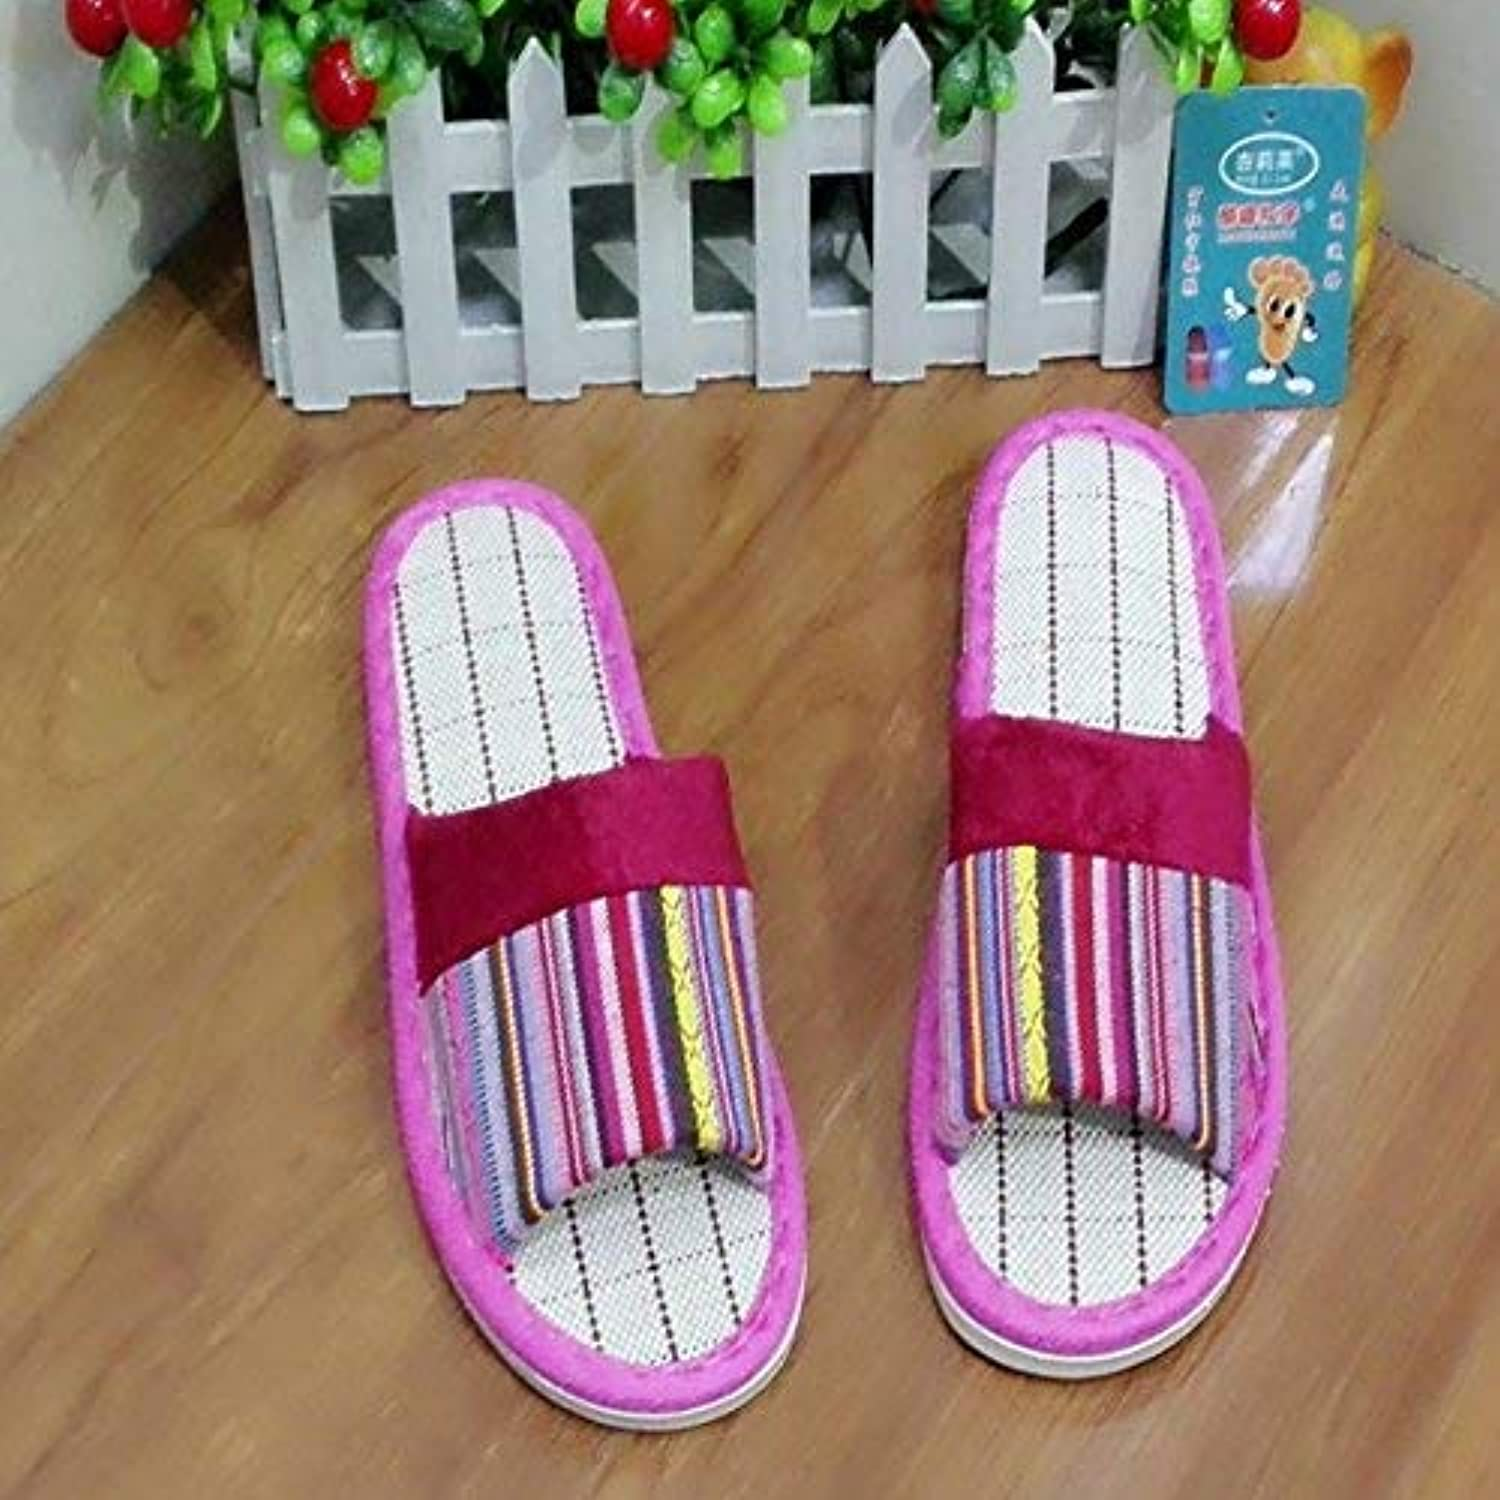 JaHGDU Ladies Fashion Home Interior Leisure Slippers Pink Red Summer Indoor Home Slippers Personality Creativity Quality